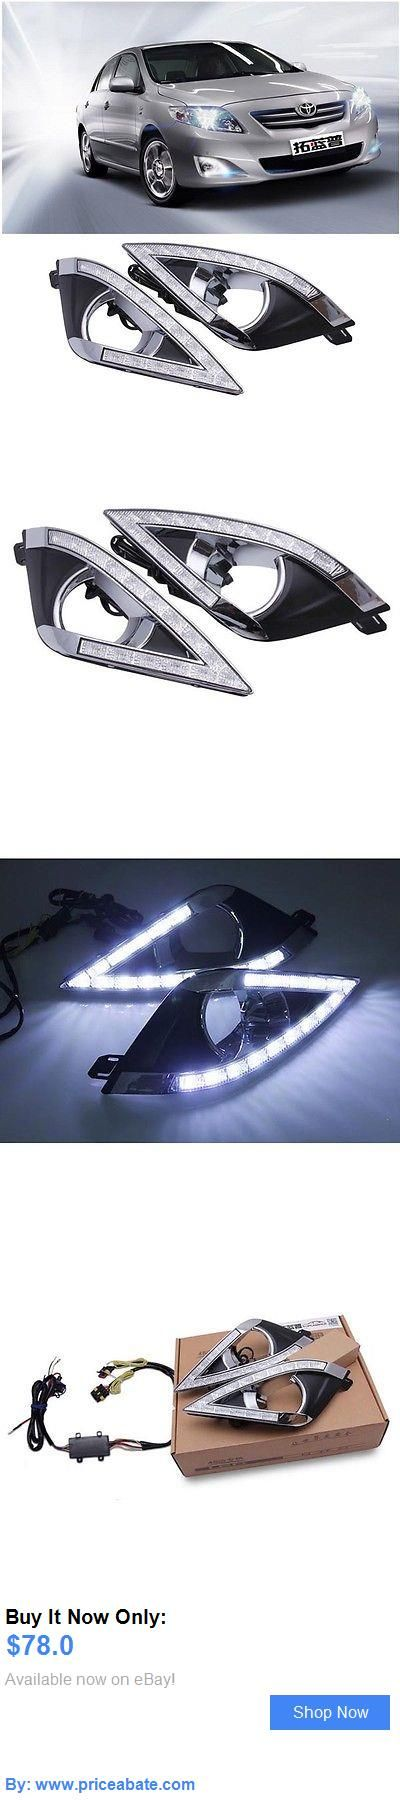 Motors Parts And Accessories: New Led Daytime Running Light Lamp Drl For Toyota Corolla Ex 2013 Fog Lights BUY IT NOW ONLY: $78.0 #priceabateMotorsPartsAndAccessories OR #priceabate